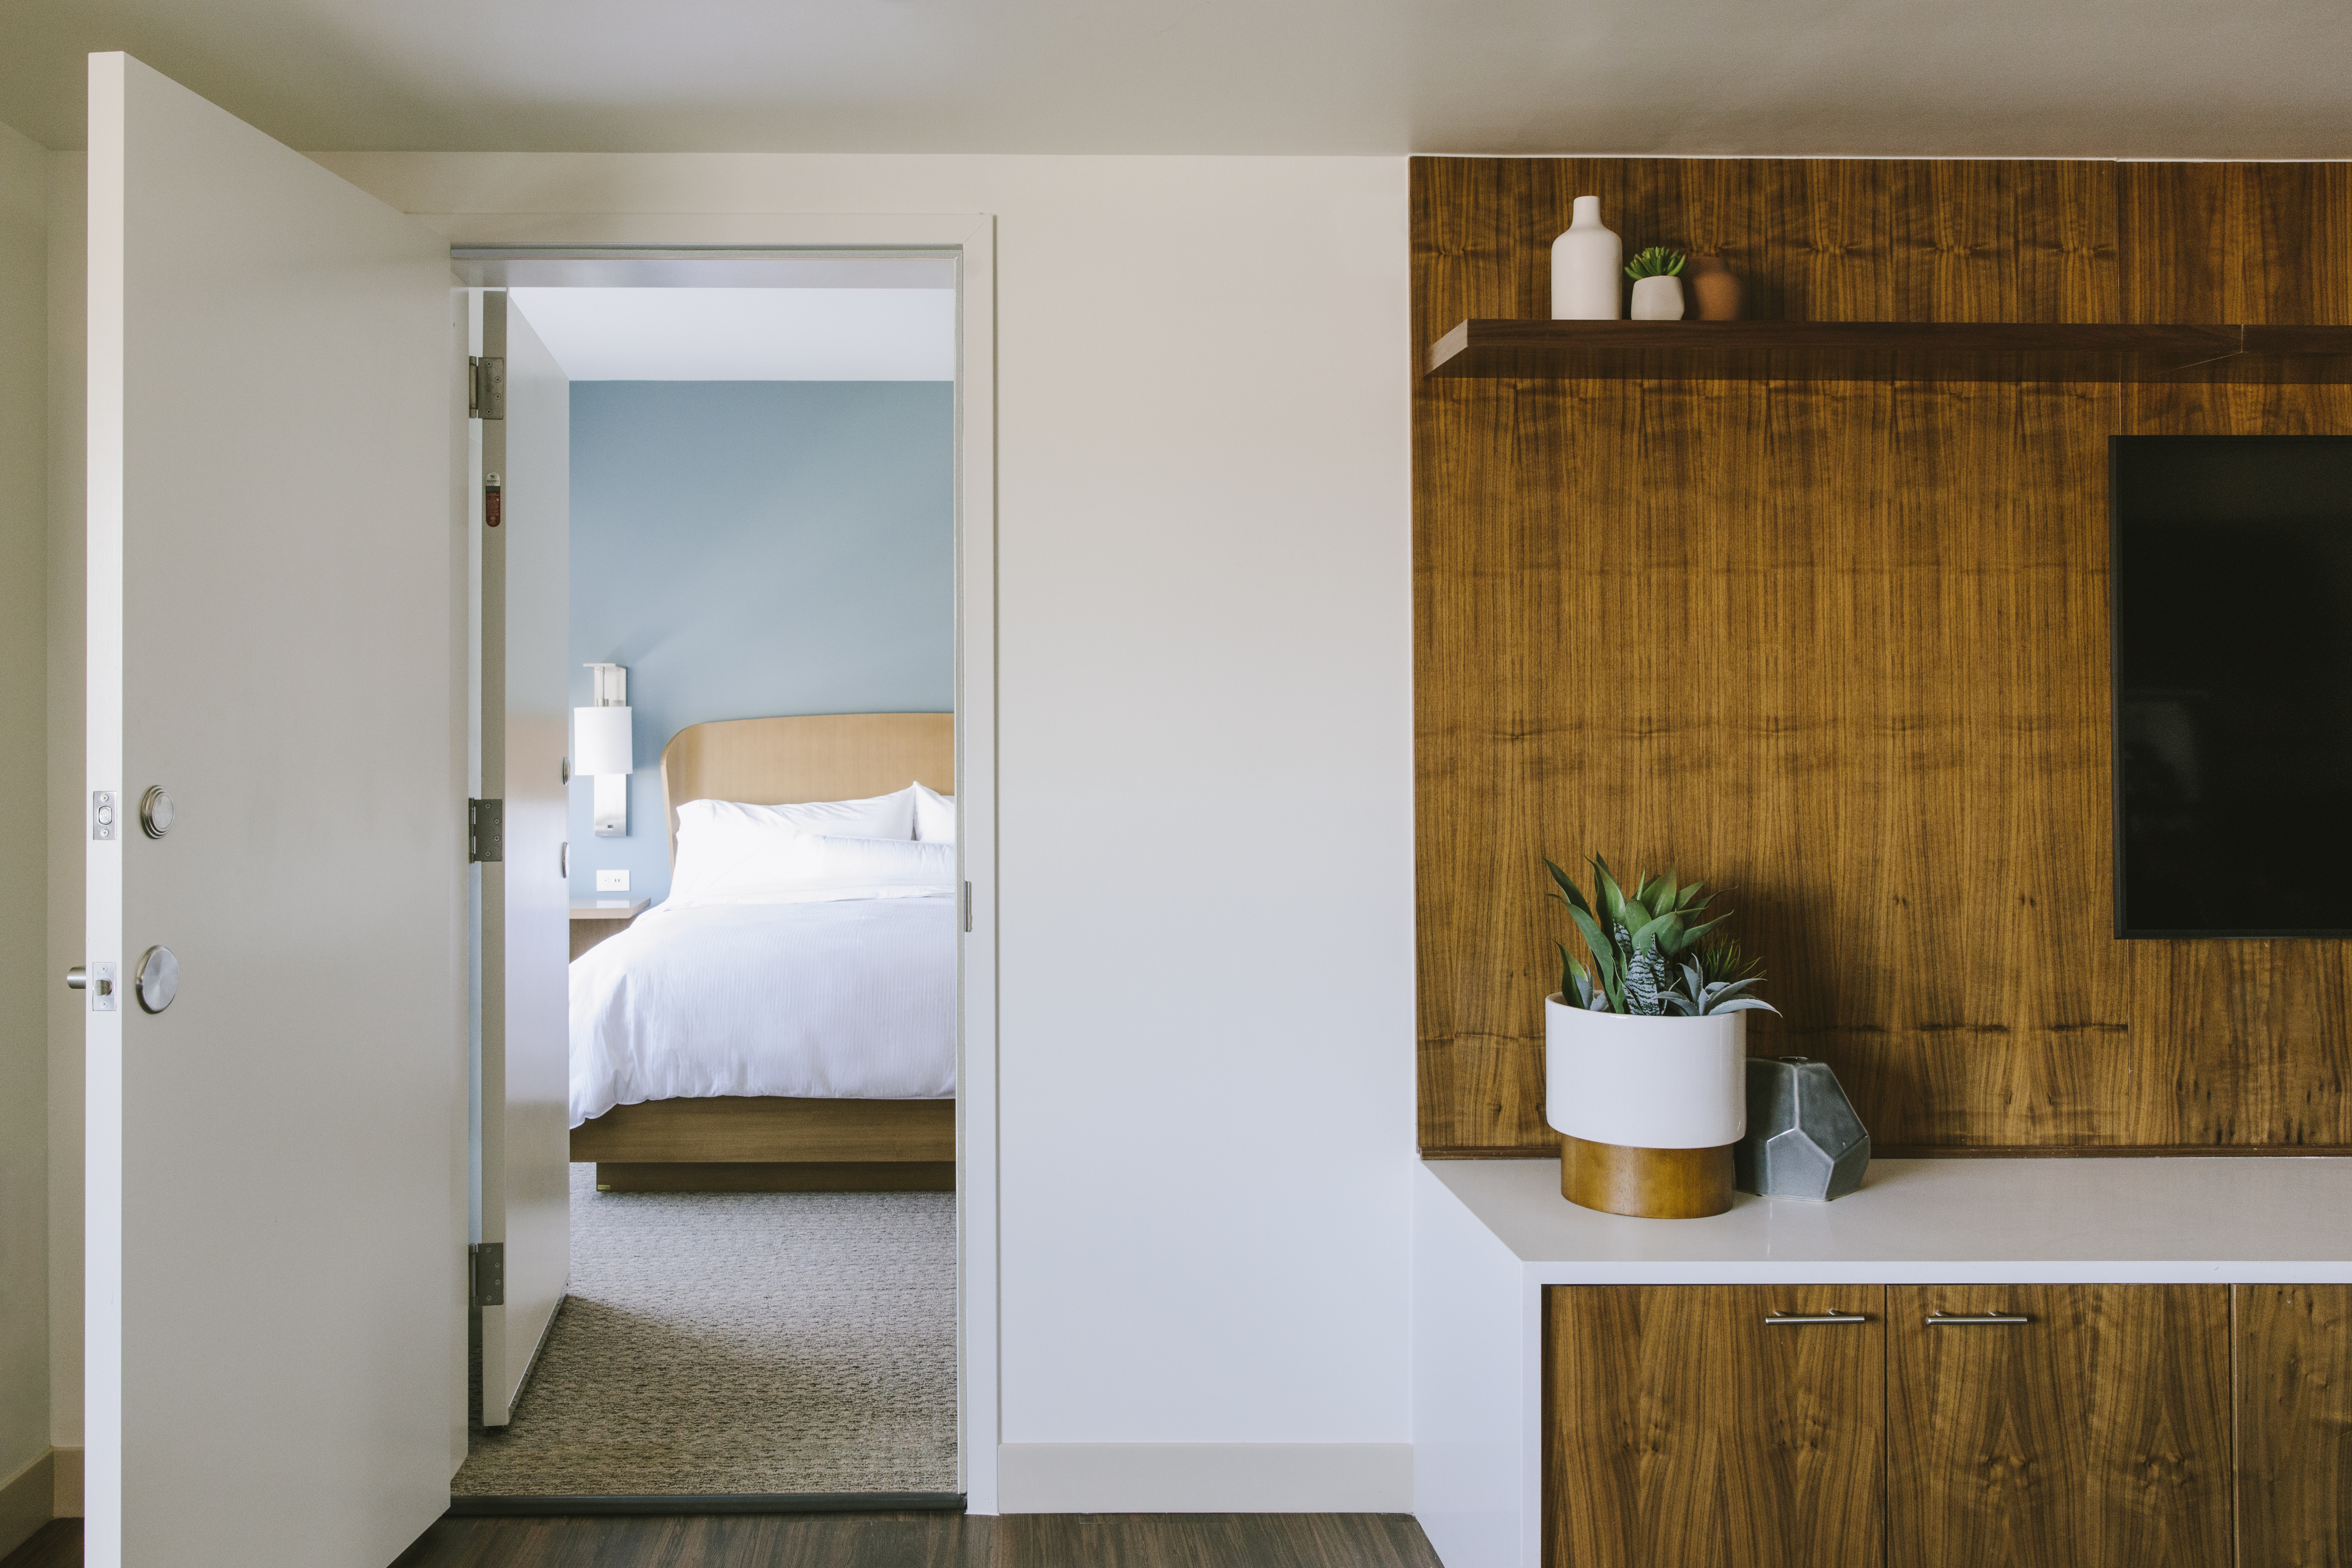 Studio Commons suites have four guestrooms around shared living spaces.